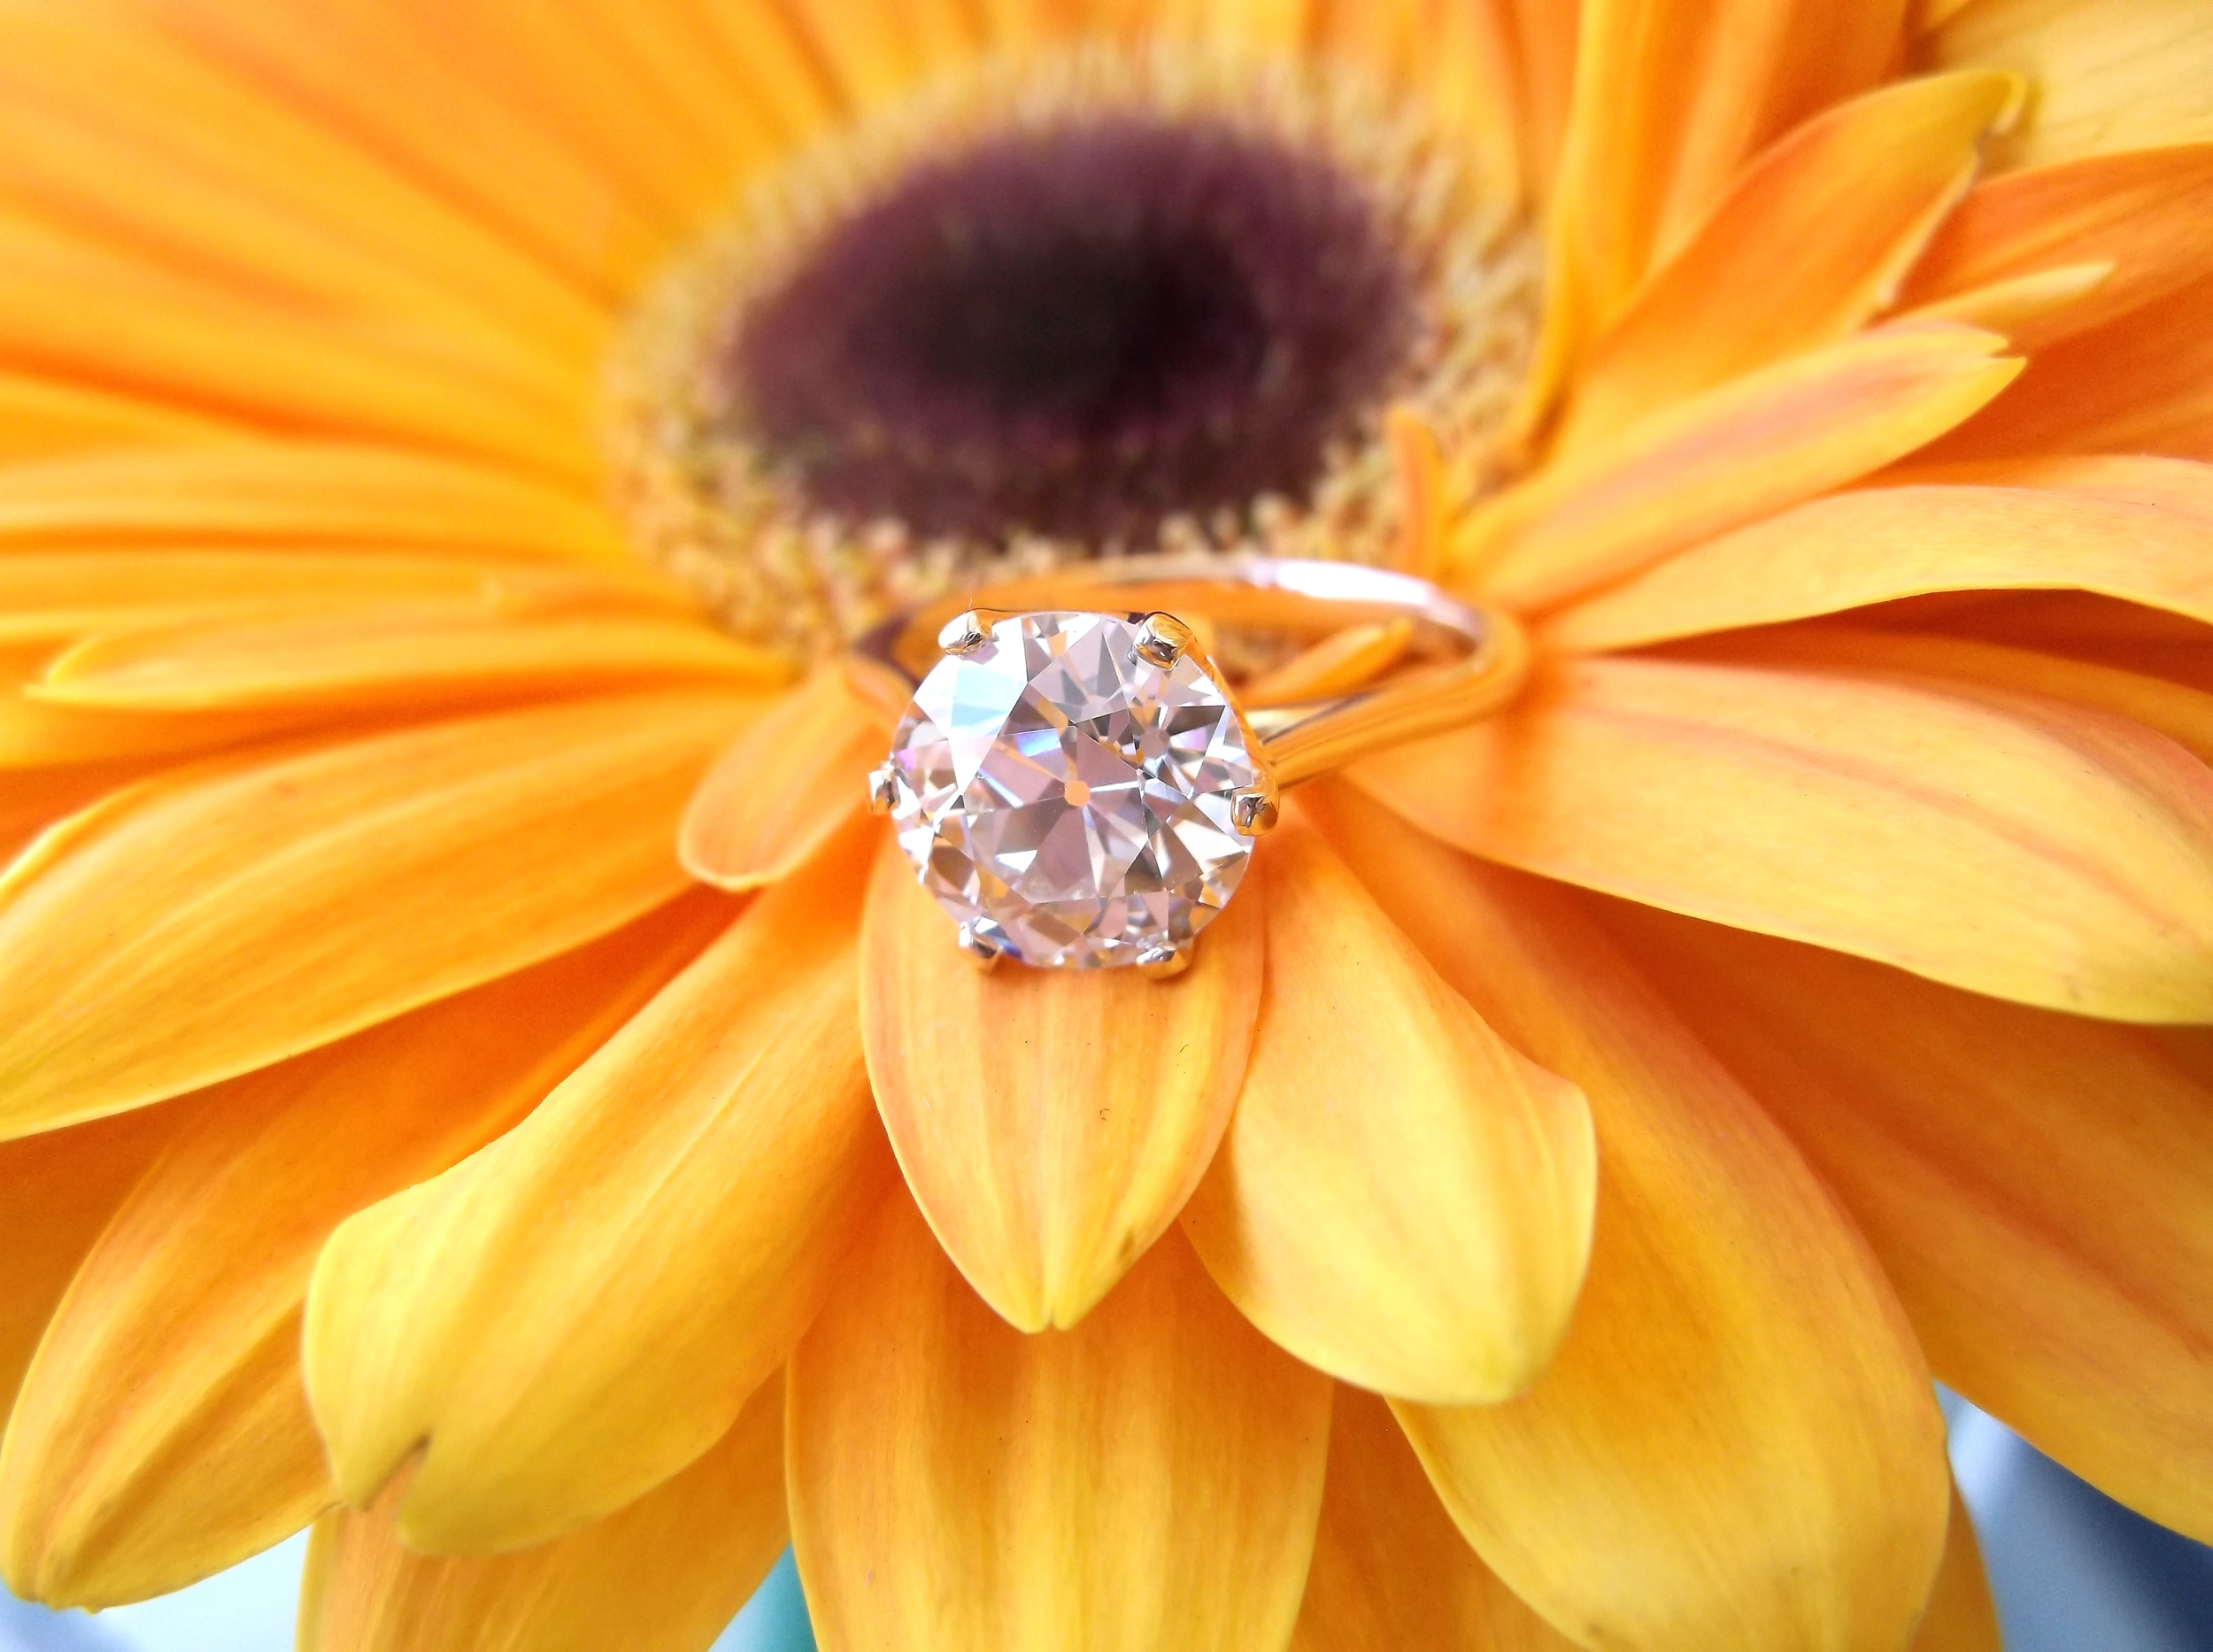 SOLD - Timeless 2.63 carat Old European cut diamond set in a dainty six prong yellow gold setting.